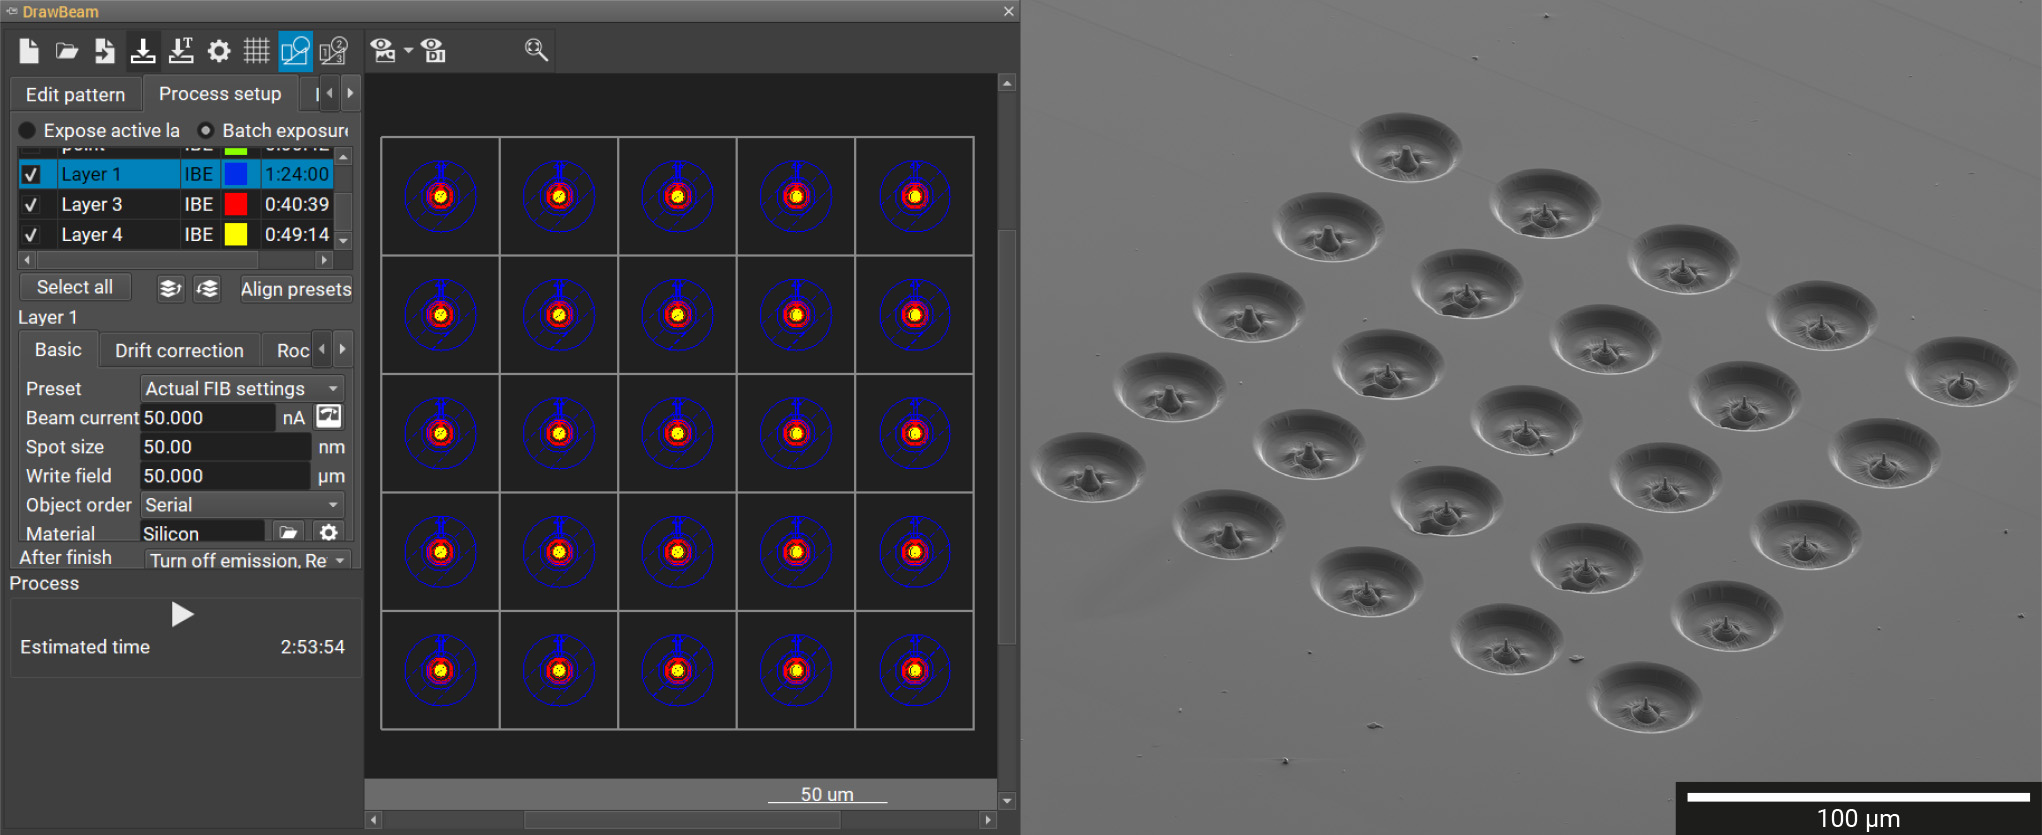 (Left) DrawBeam Advanced interface showing batch-processing of a pillar array. (Right) 5 × 5 array of micro-compression pillars prepared in less than 3 hours